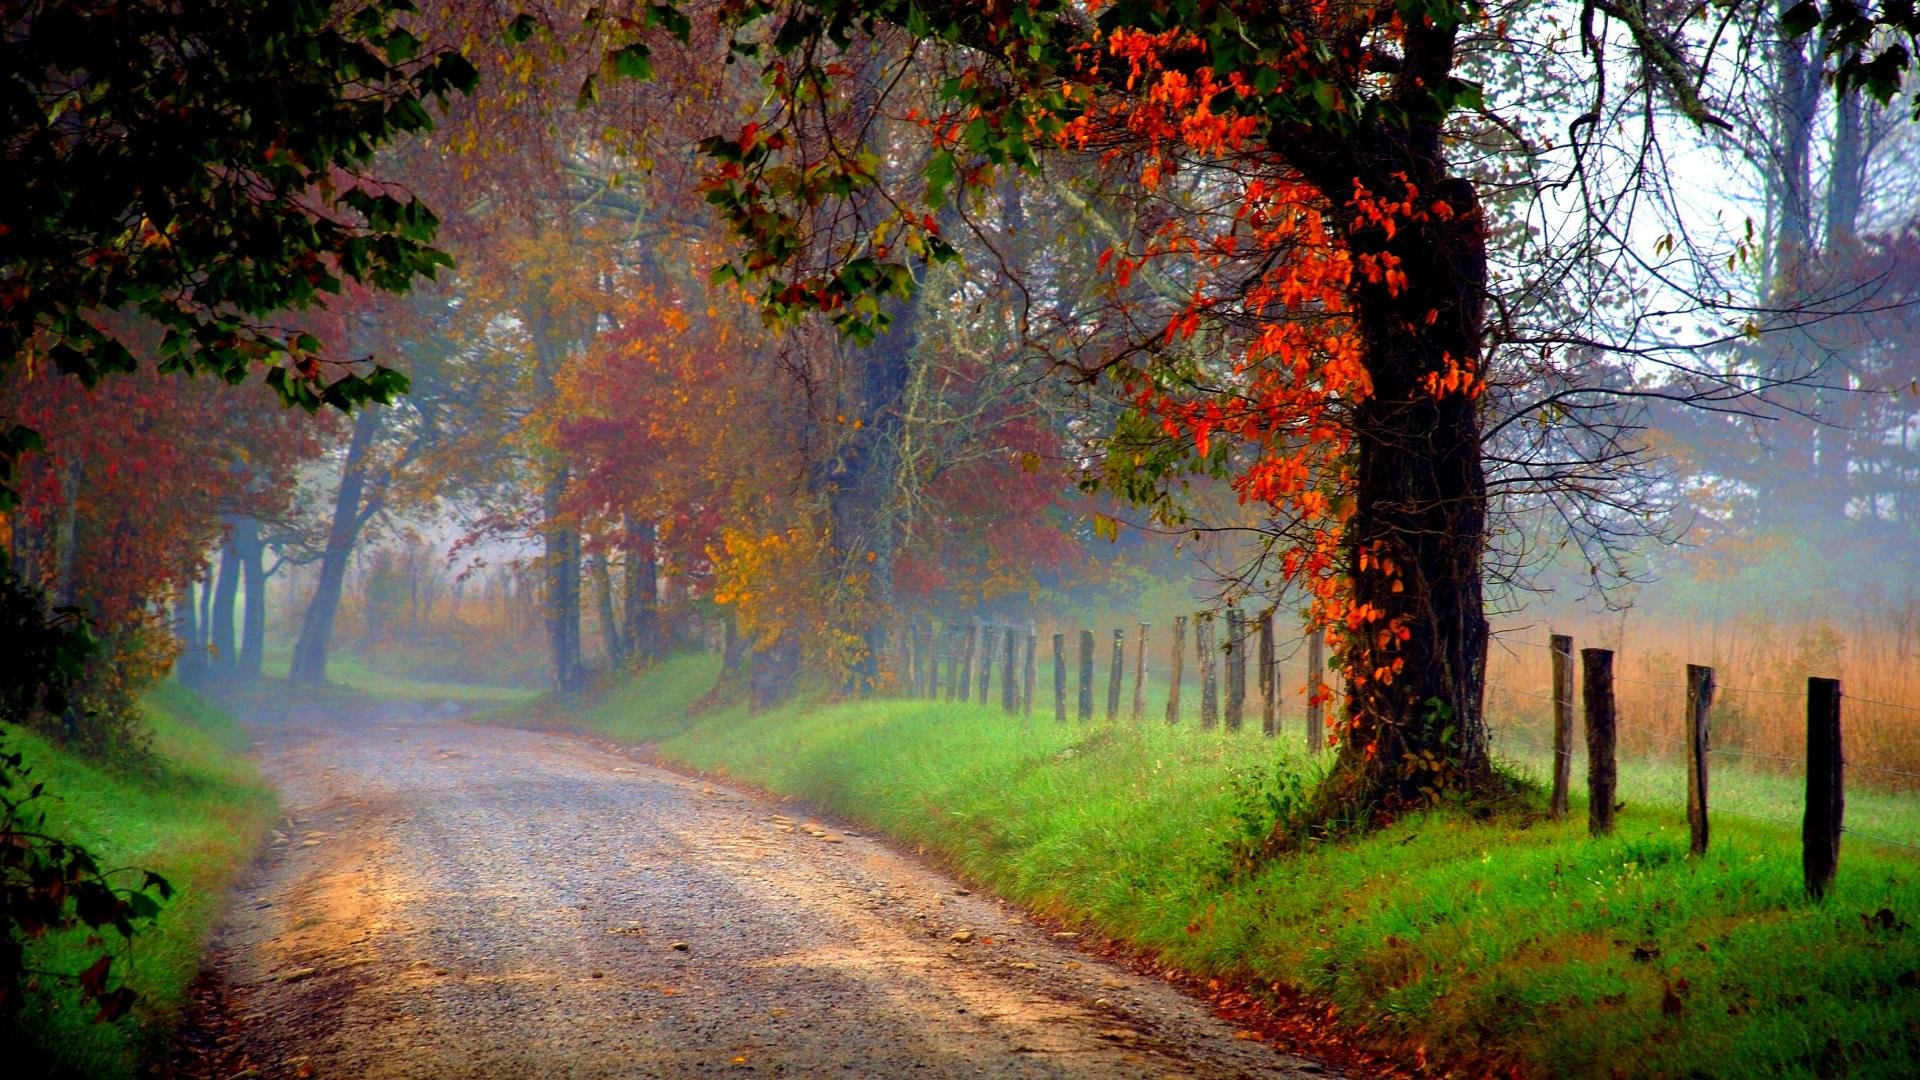 Fall Morning Wallpapers For Samsung 4 Country Road In Morning Fog Hd Hd Wallpaper